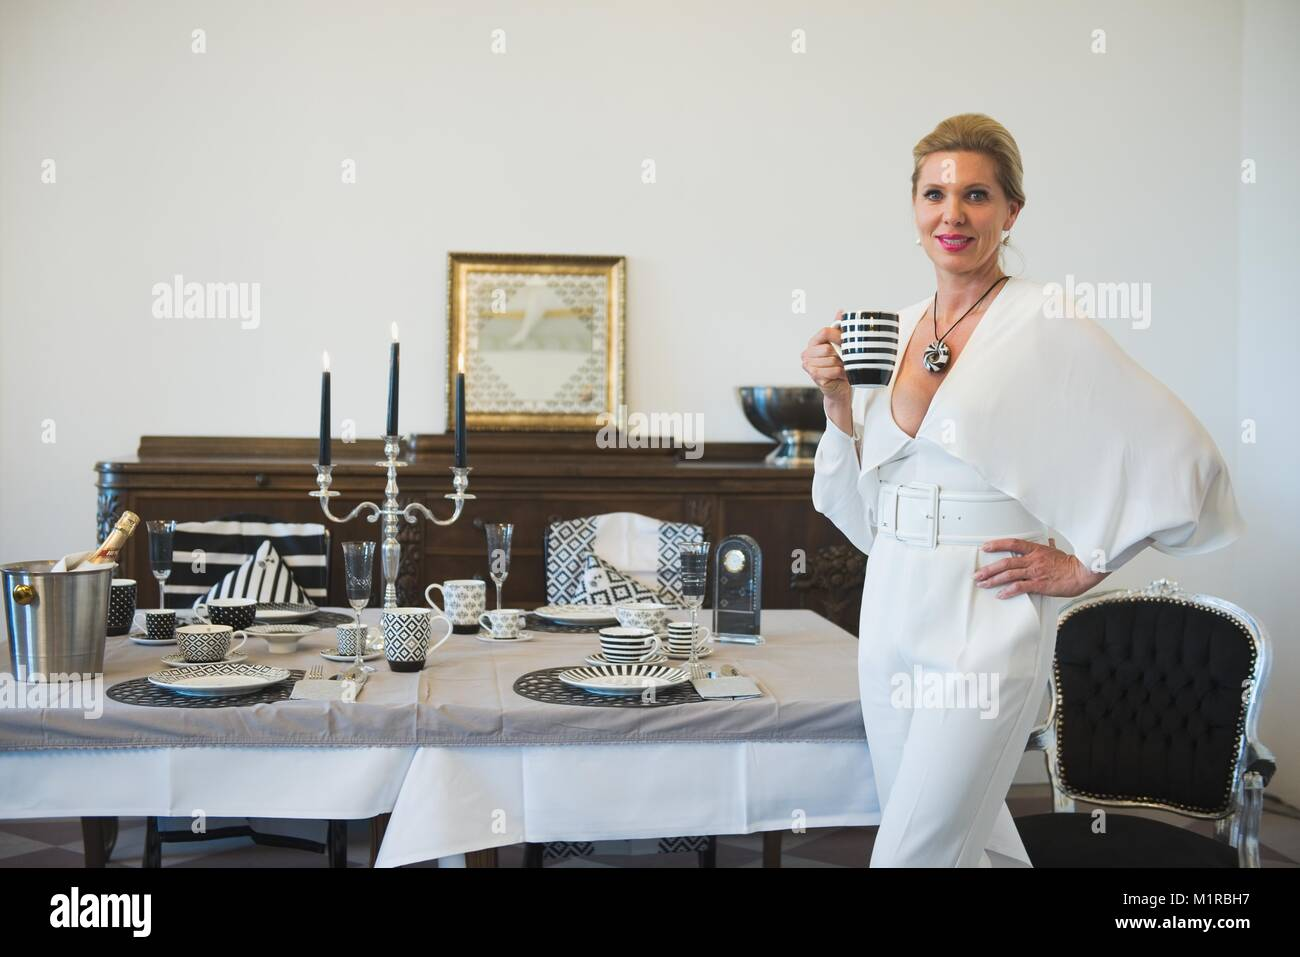 Home Decoration Collection Maya Princess Von Hohenzollern Showcases Her Porcelain Collection